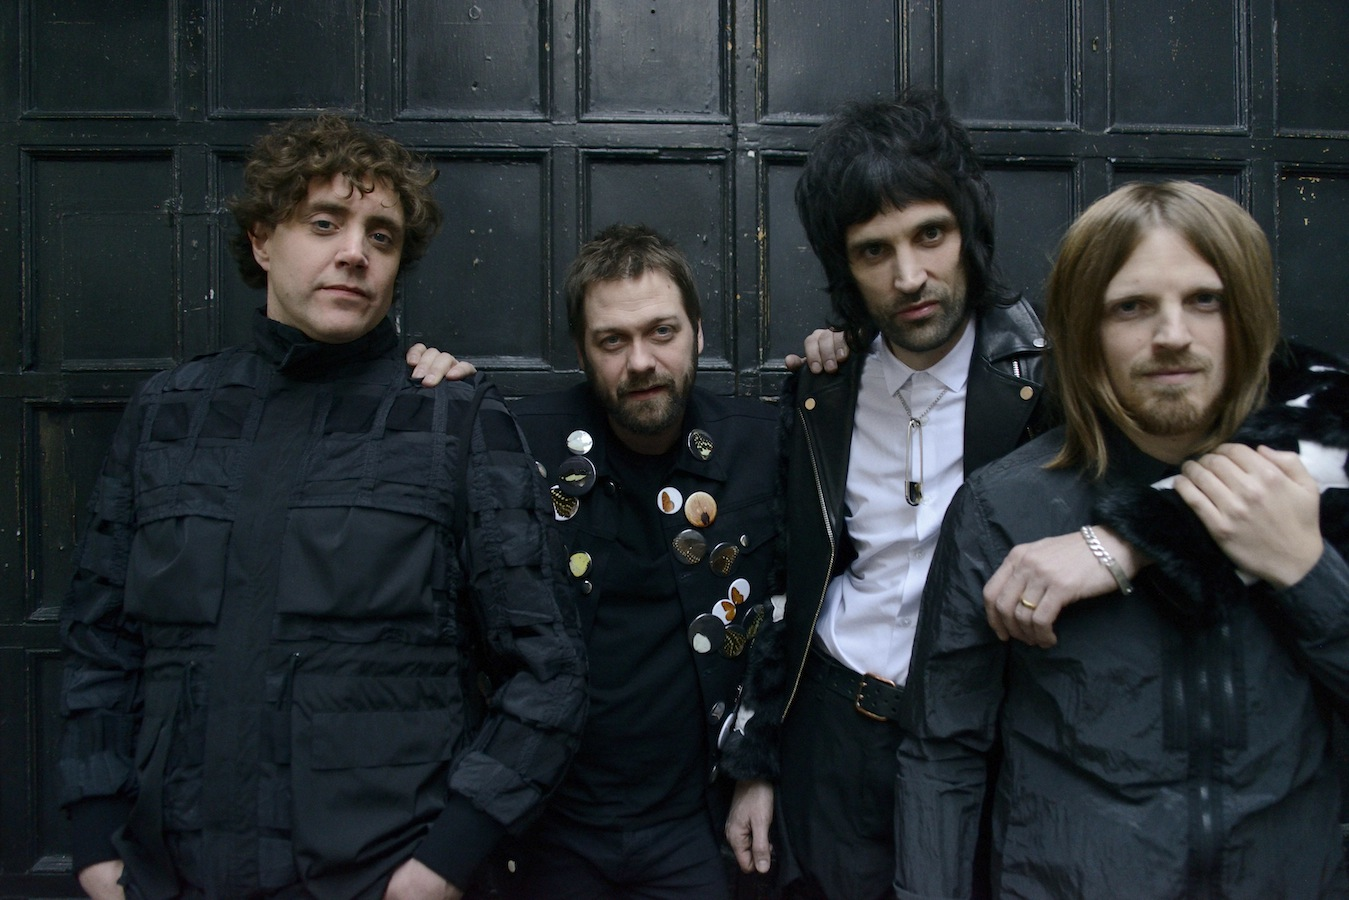 Kasabian frontman quits band as 'personal issues' impact his behaviour